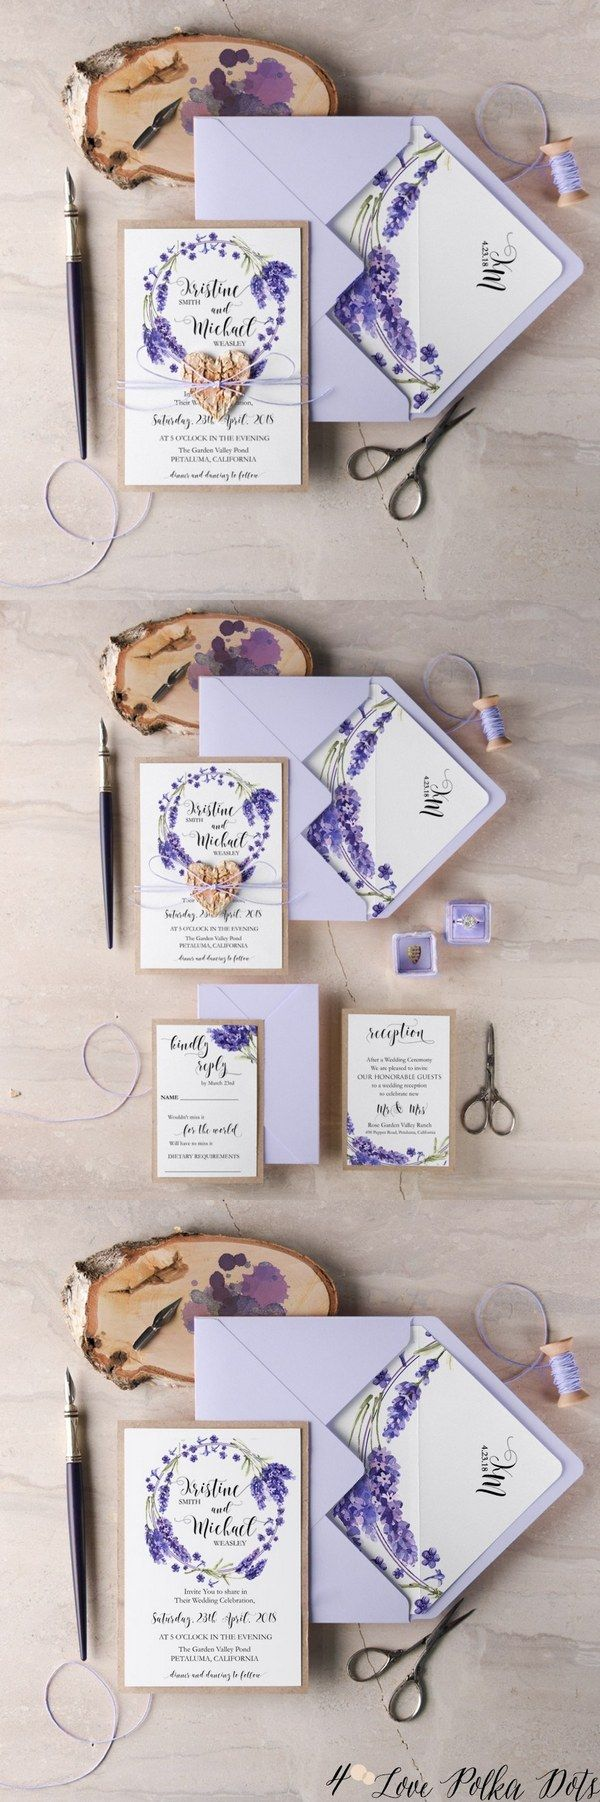 Lavender purple watercolor wedding invitations (Diy Wedding Invitations)